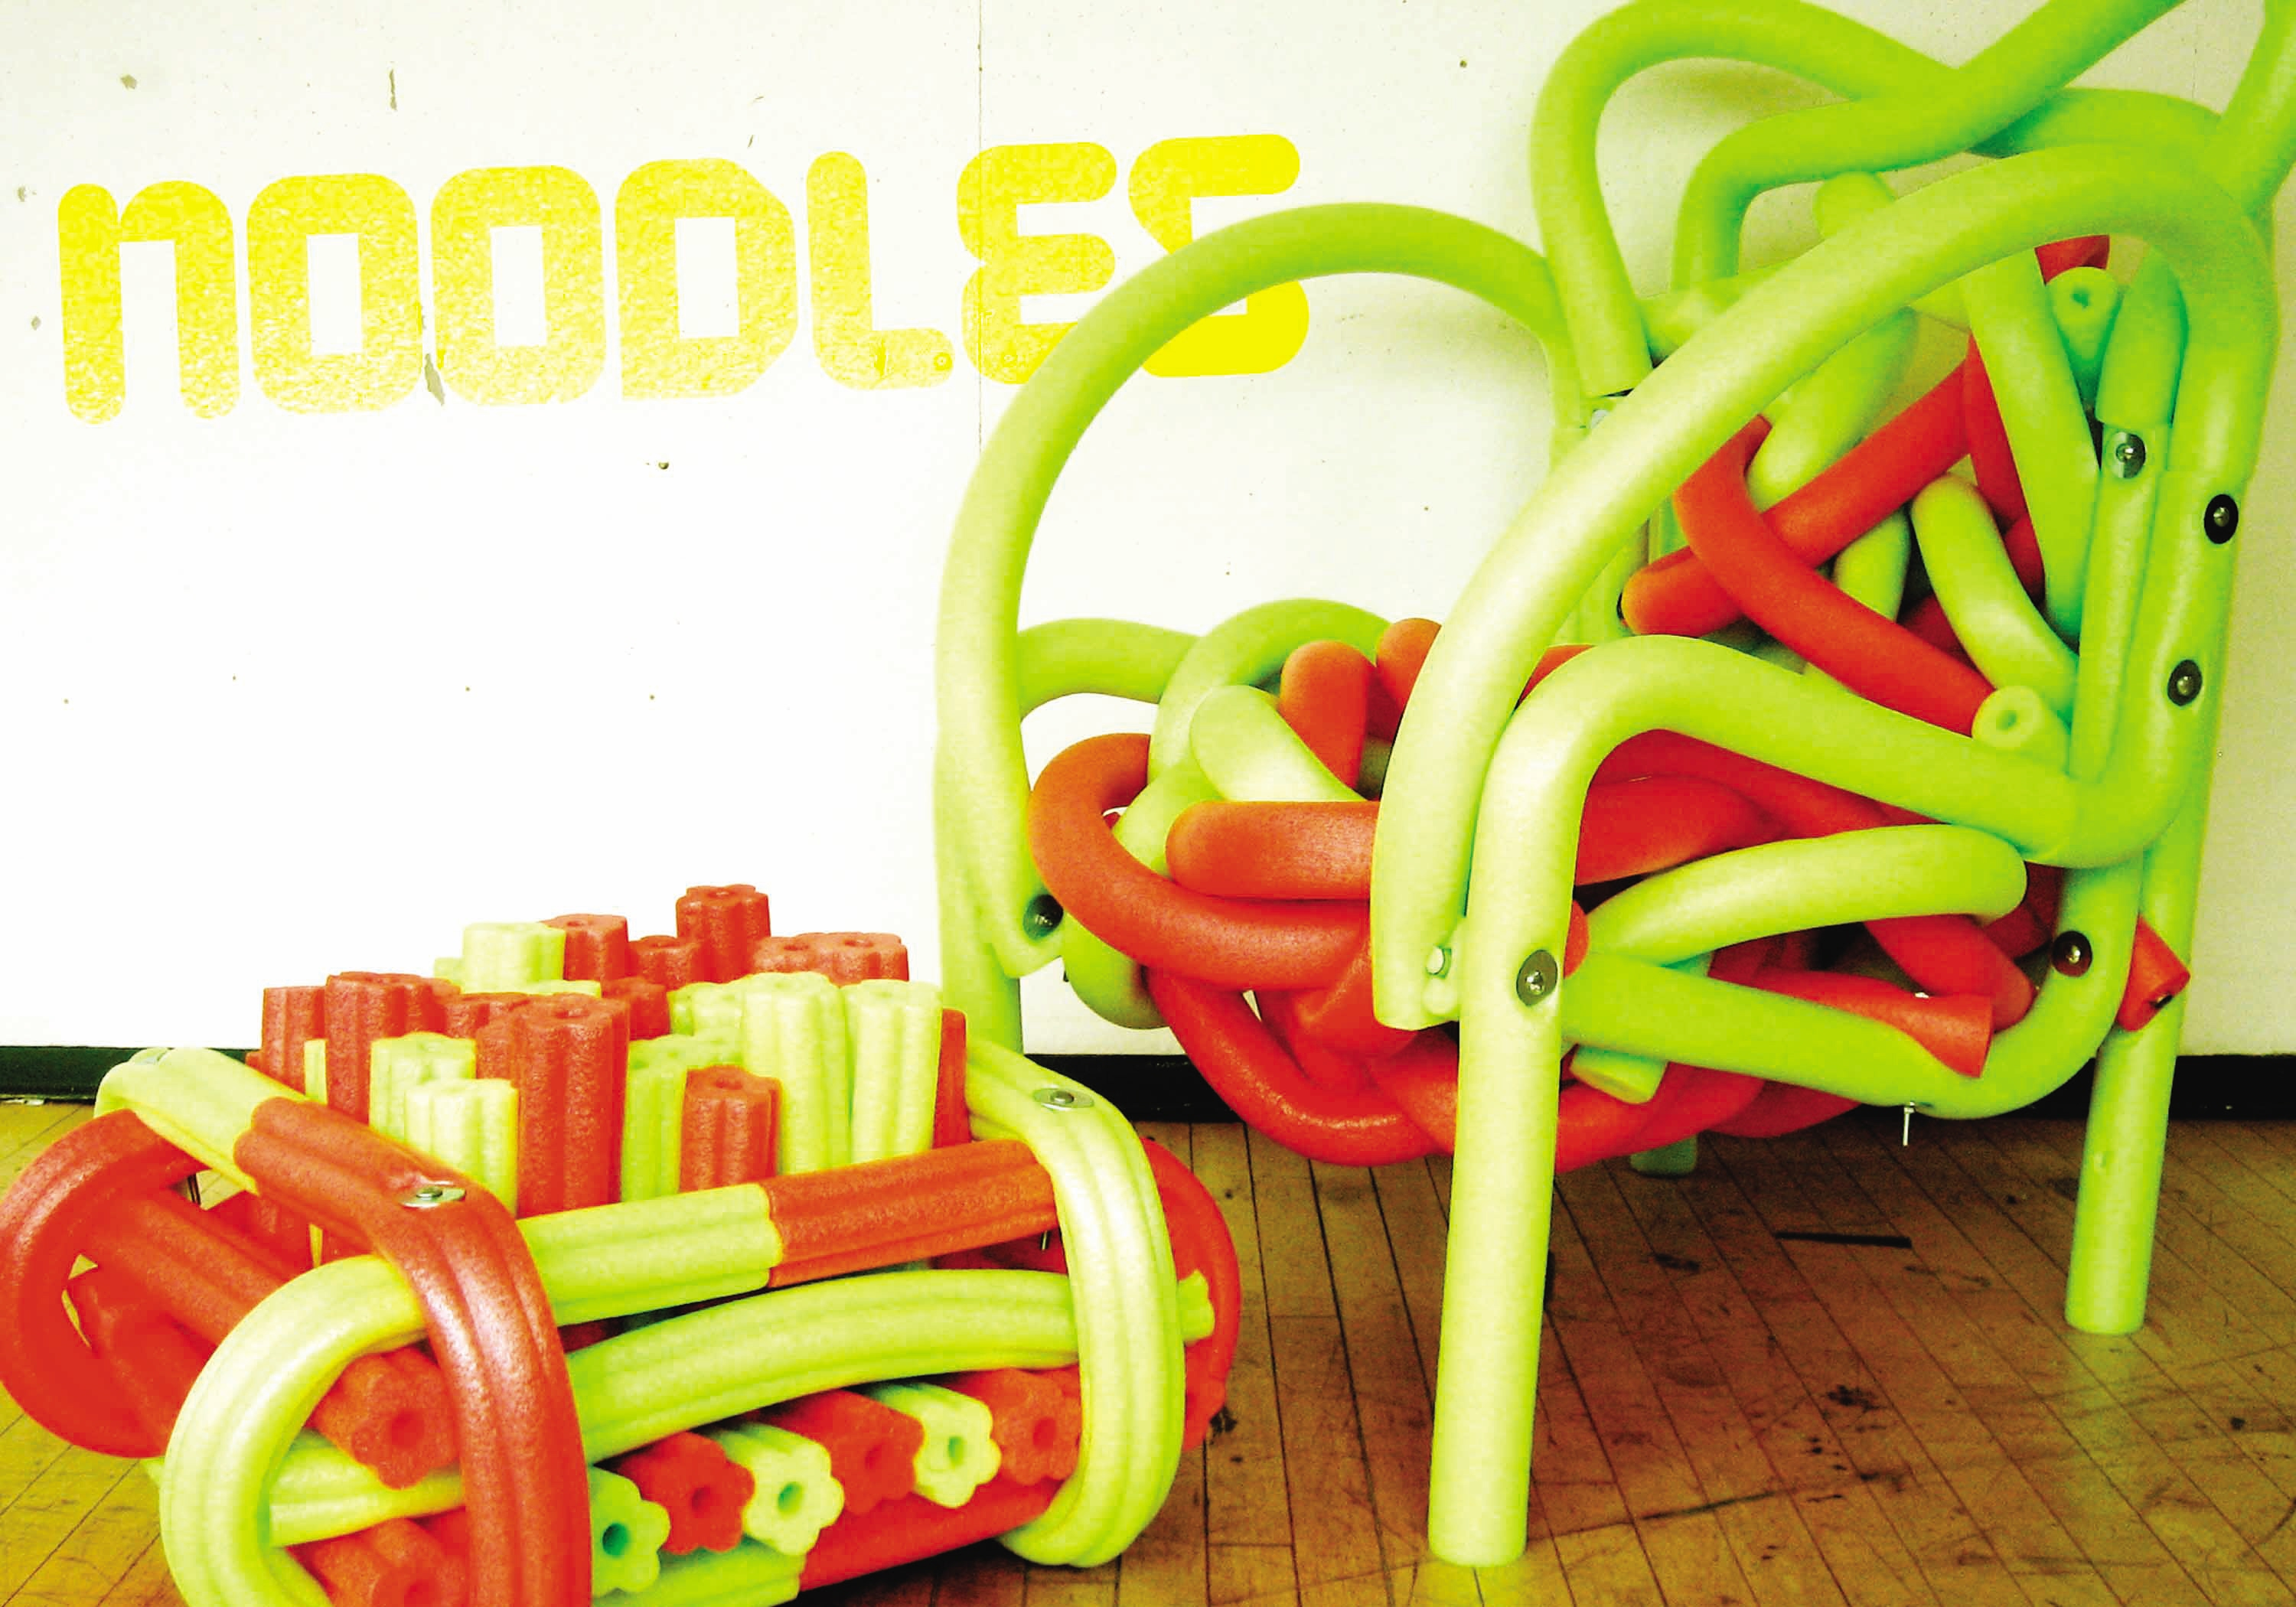 Noodles by Valera Velev at Coroflot